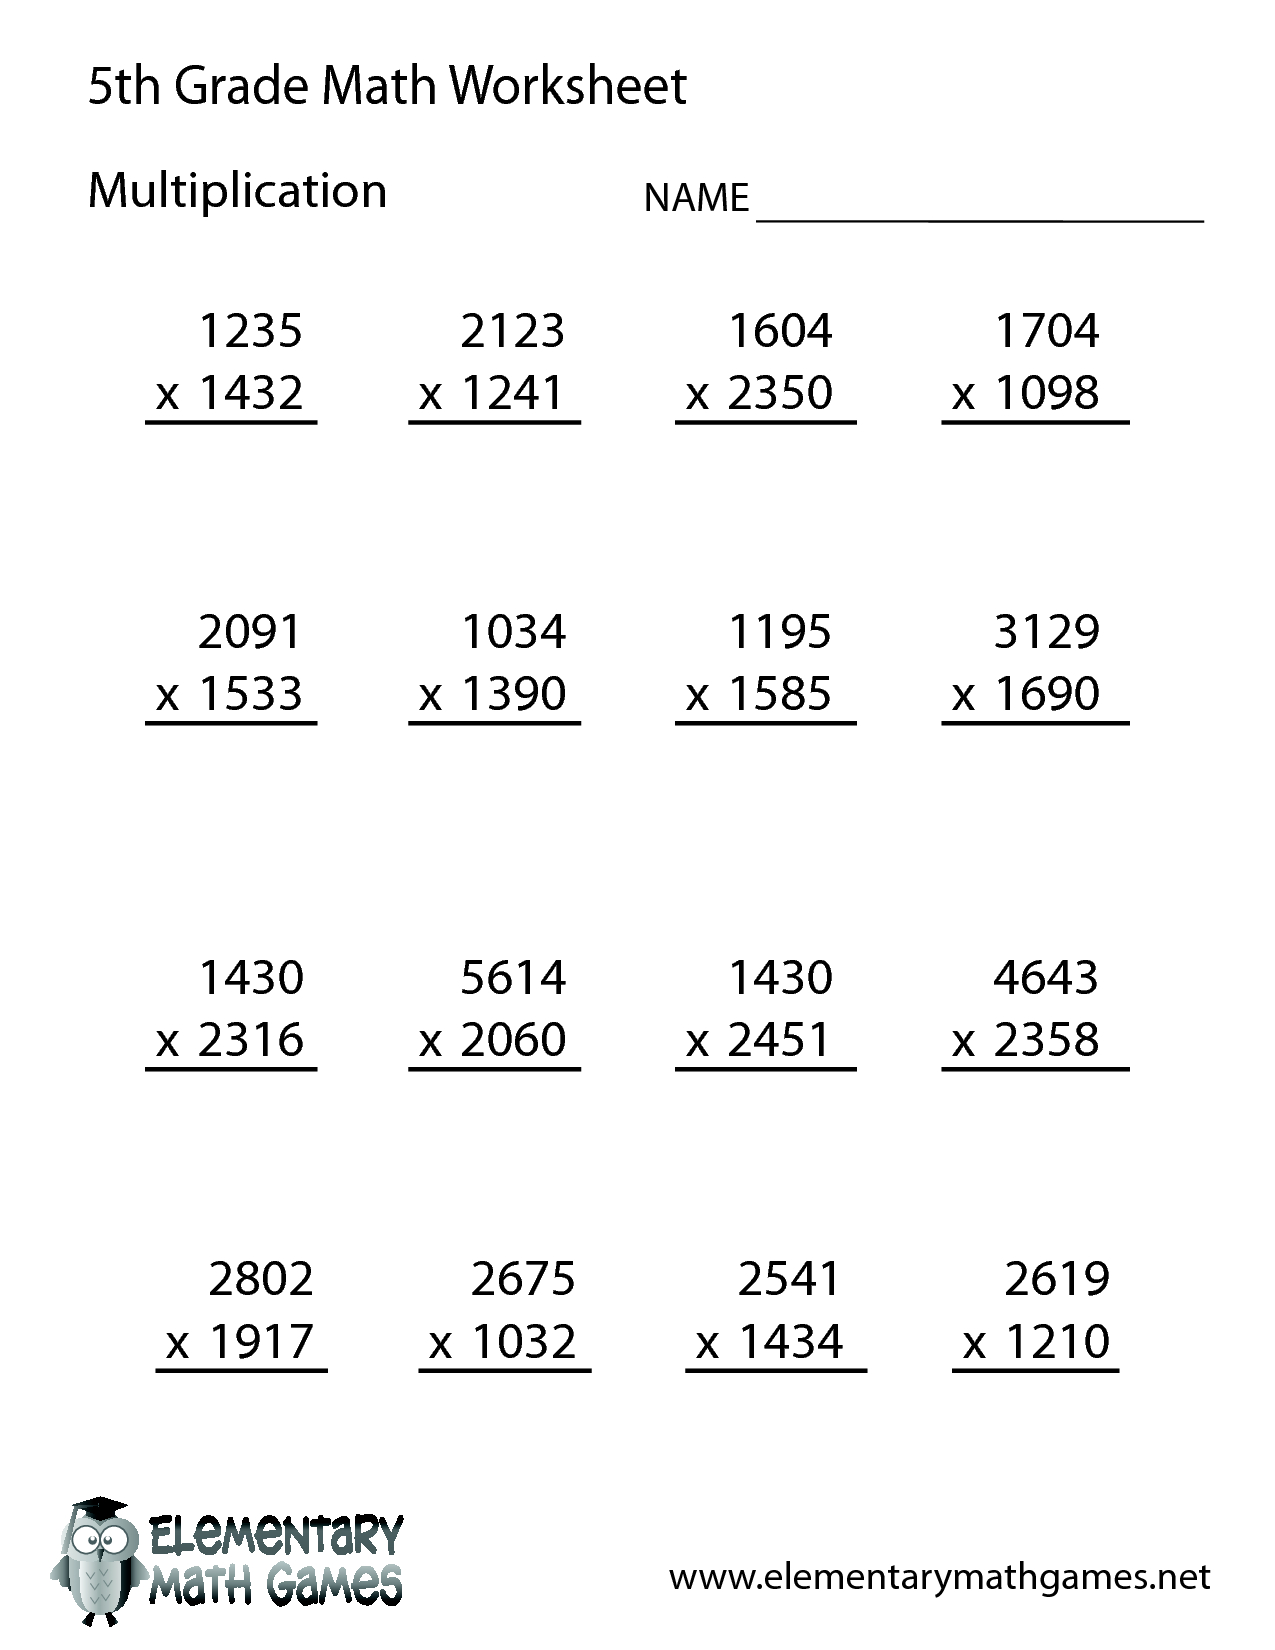 Free Printable Multiplication Worksheets For 5th Grade